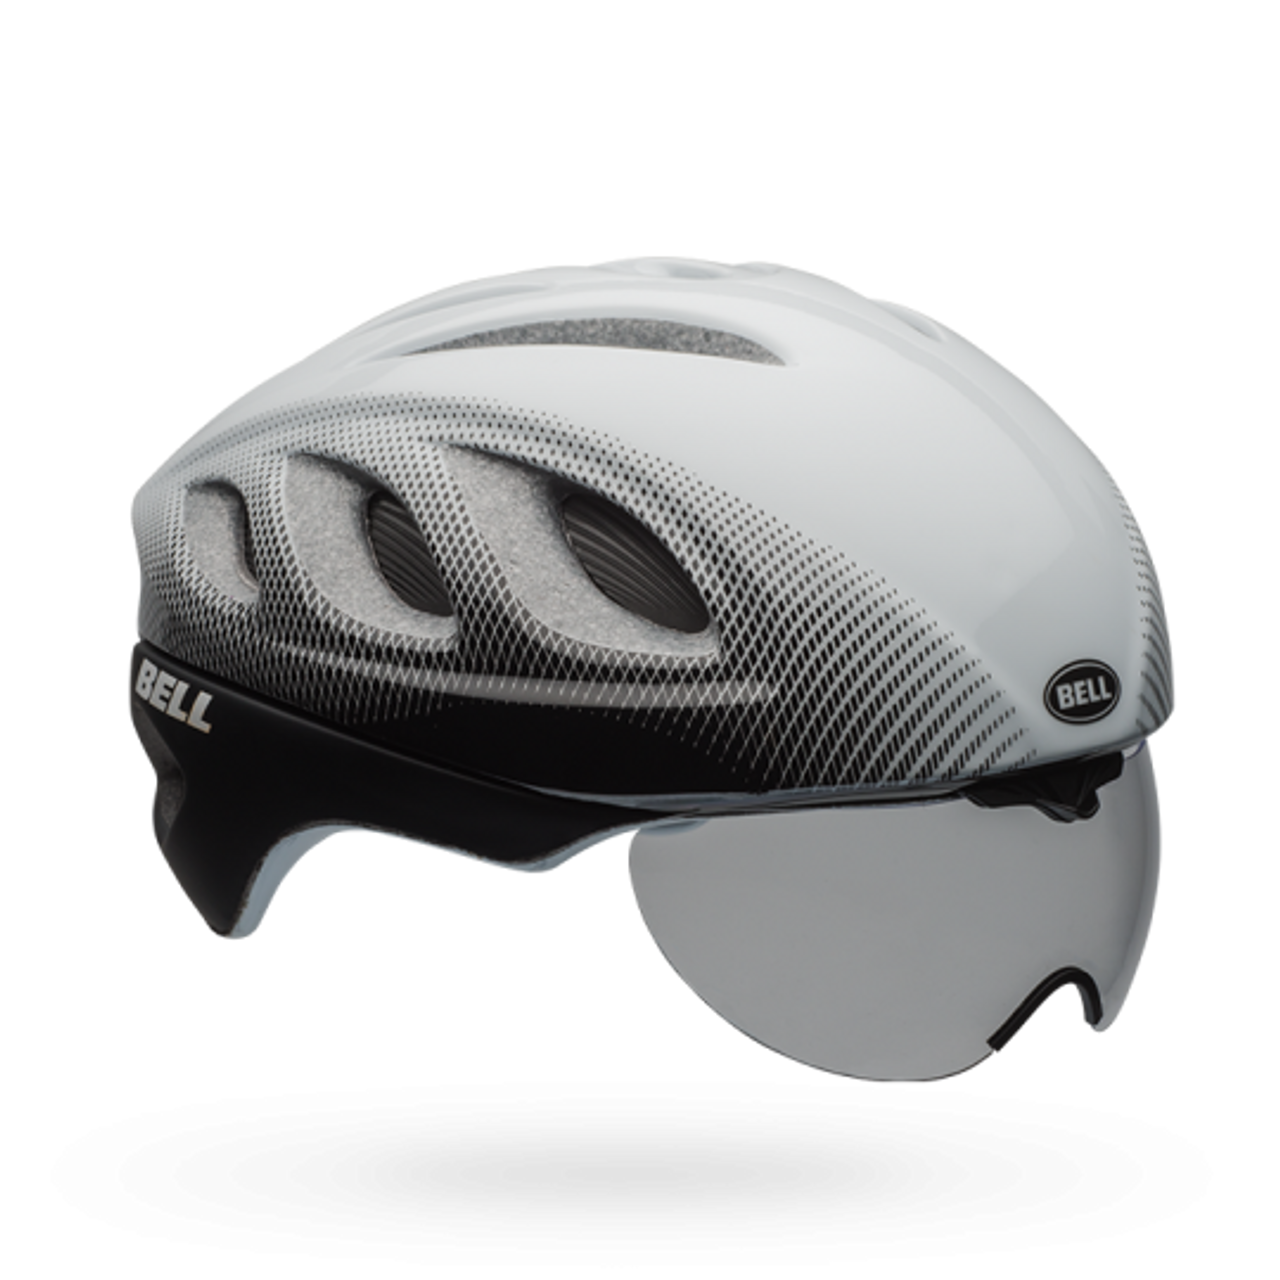 8409543e Bell Star Pro Helmet with Transitions Shield - 2017 - Triathlete Sports